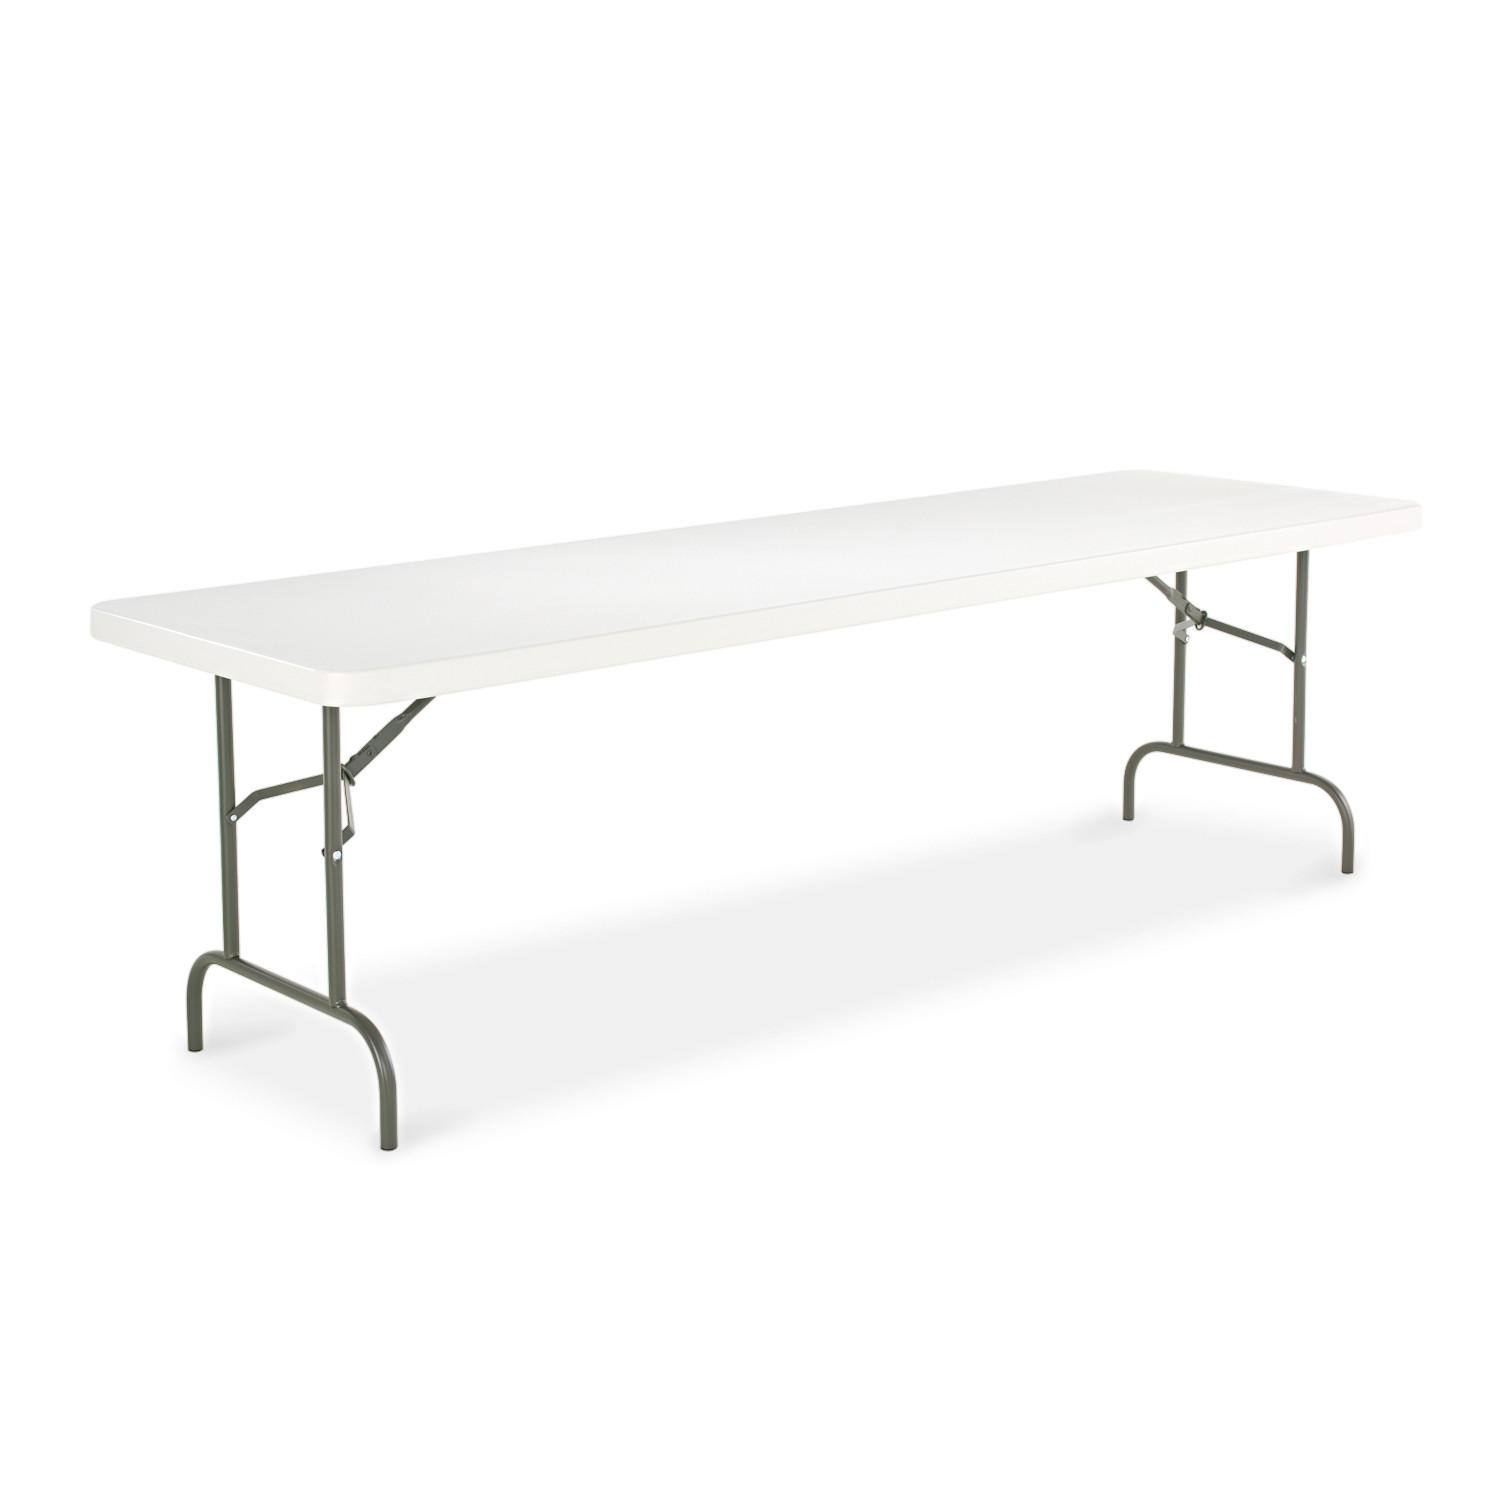 Alera Resin Rectangular Folding Table, Square Edge, 96w x 30d x 29h, Platinum by ALERA